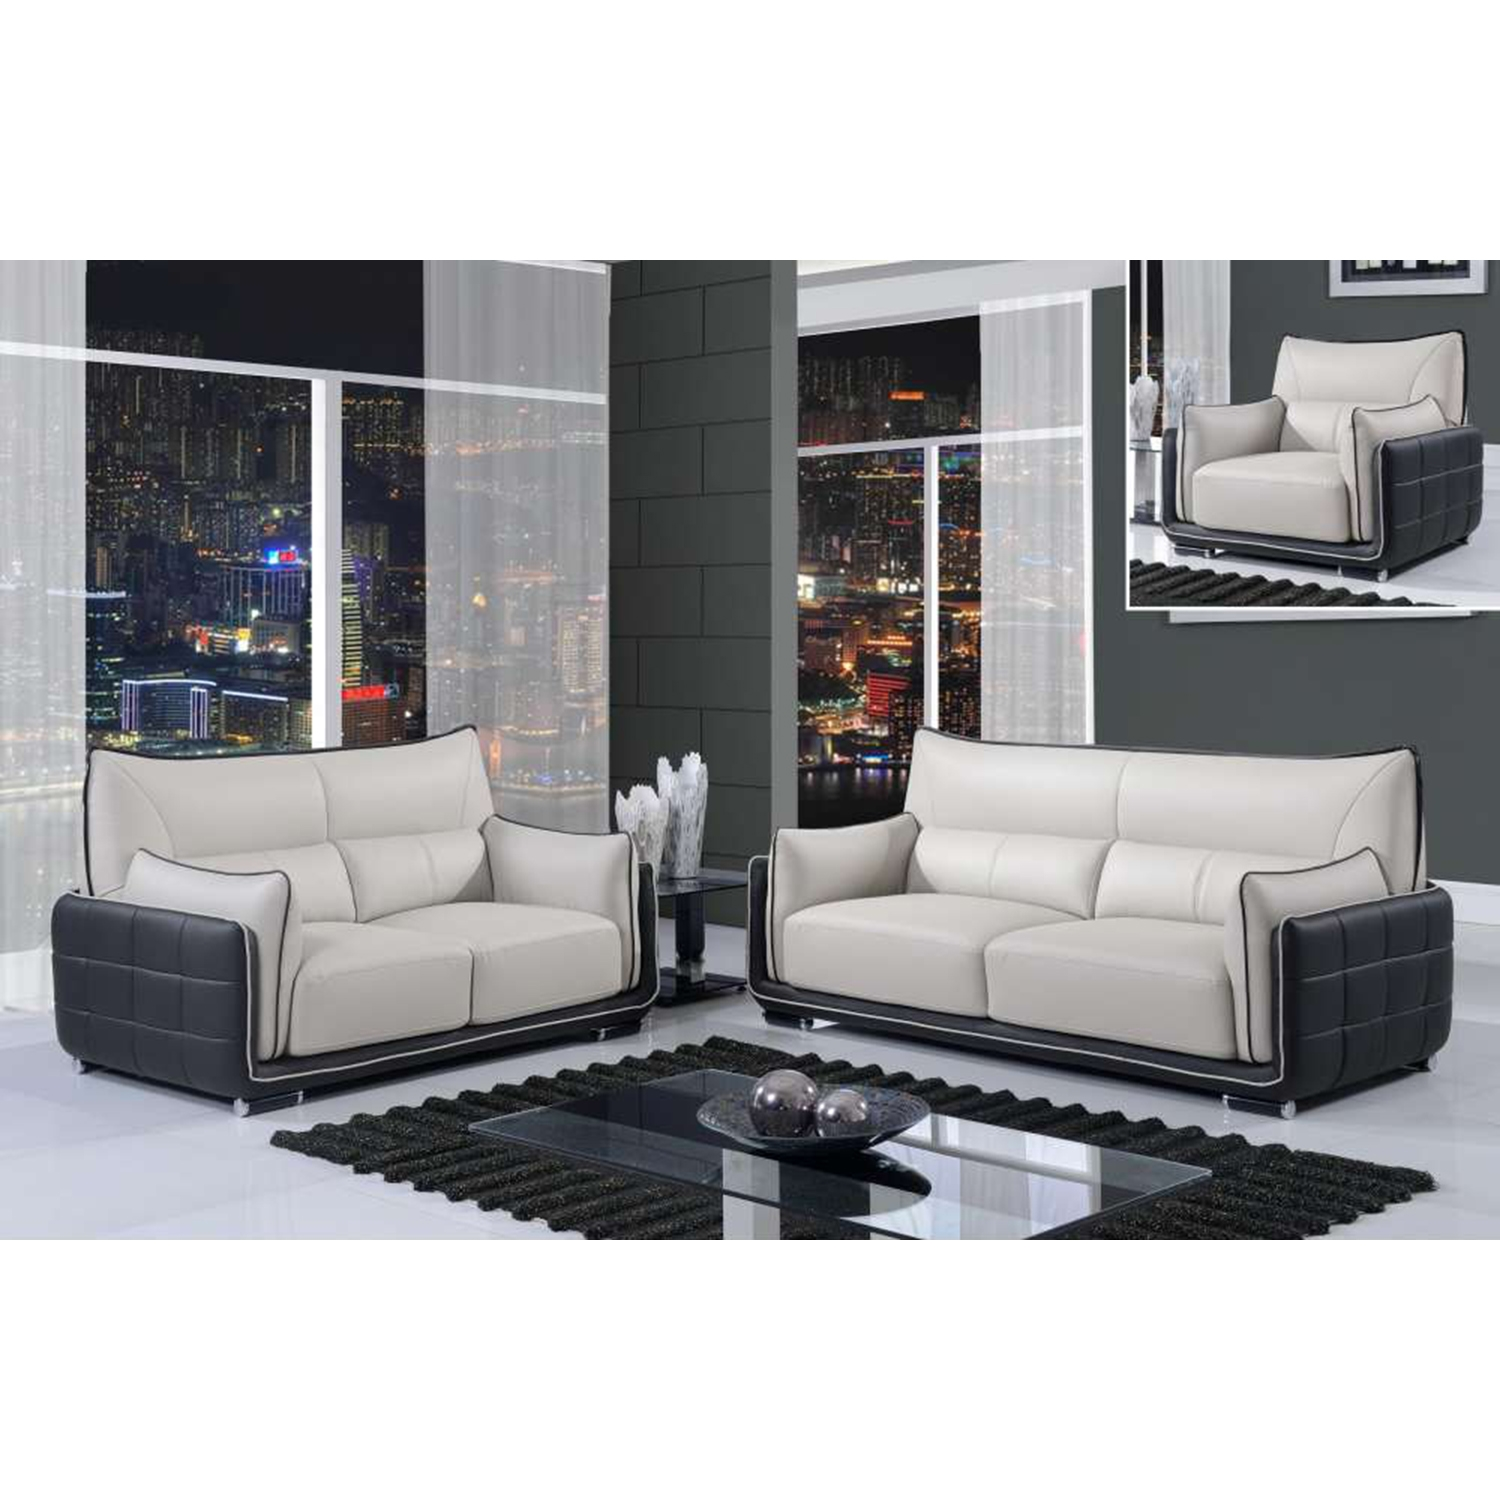 Kaden Natalie Gray/Natalie Black Leather Sofa Set - GLO-UFY220-R6U6-GR-BL-SET